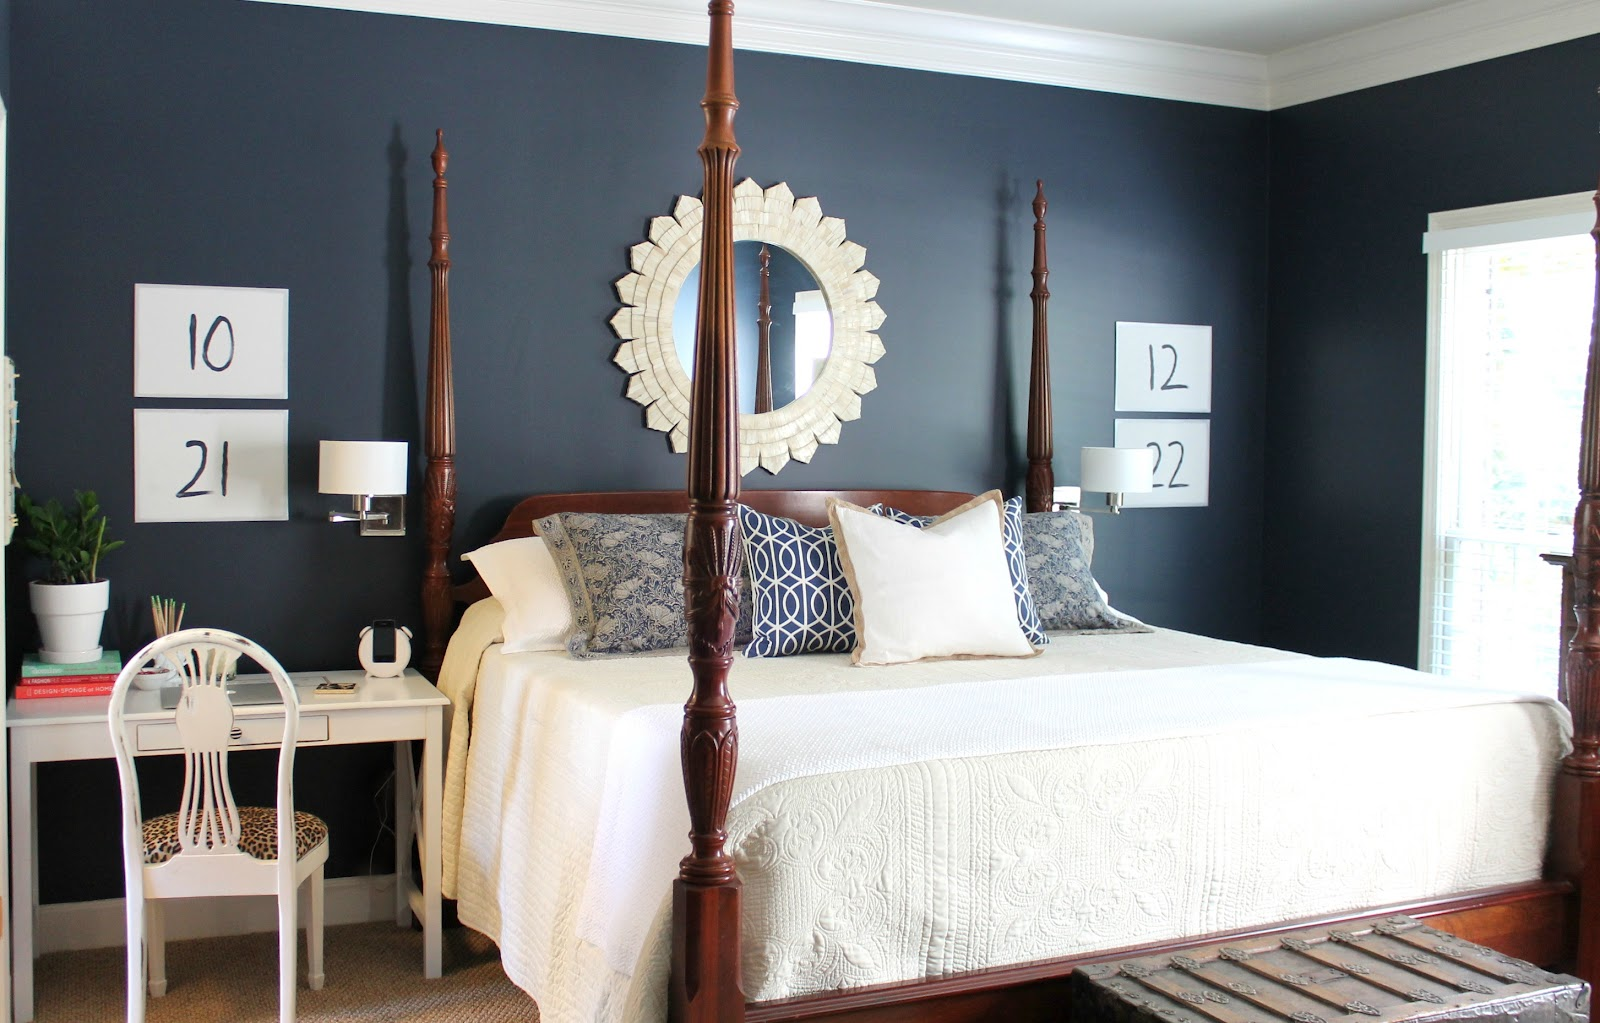 Our Fifth House: Master Bedroom Progress